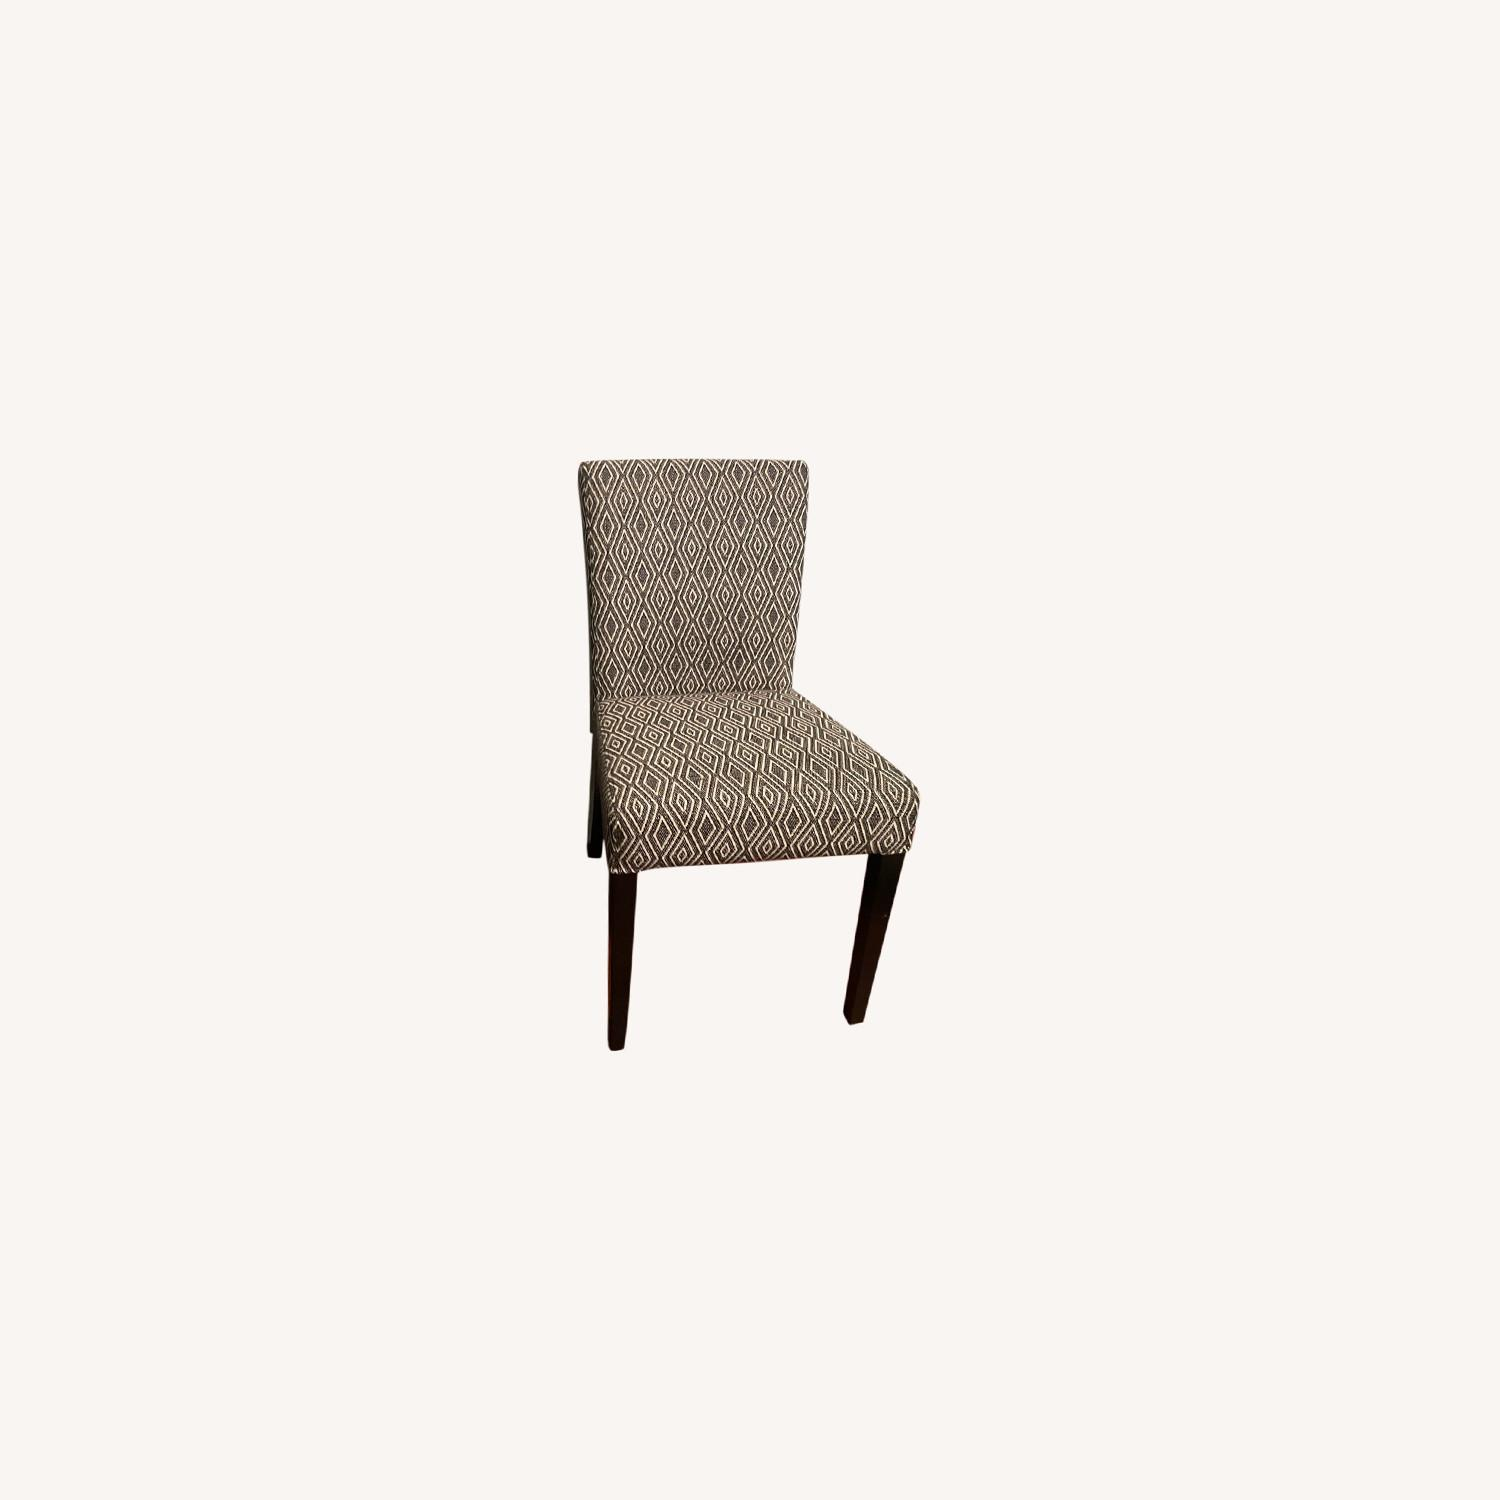 Crate & Barrel Upholstered Dining Chair Set - image-0